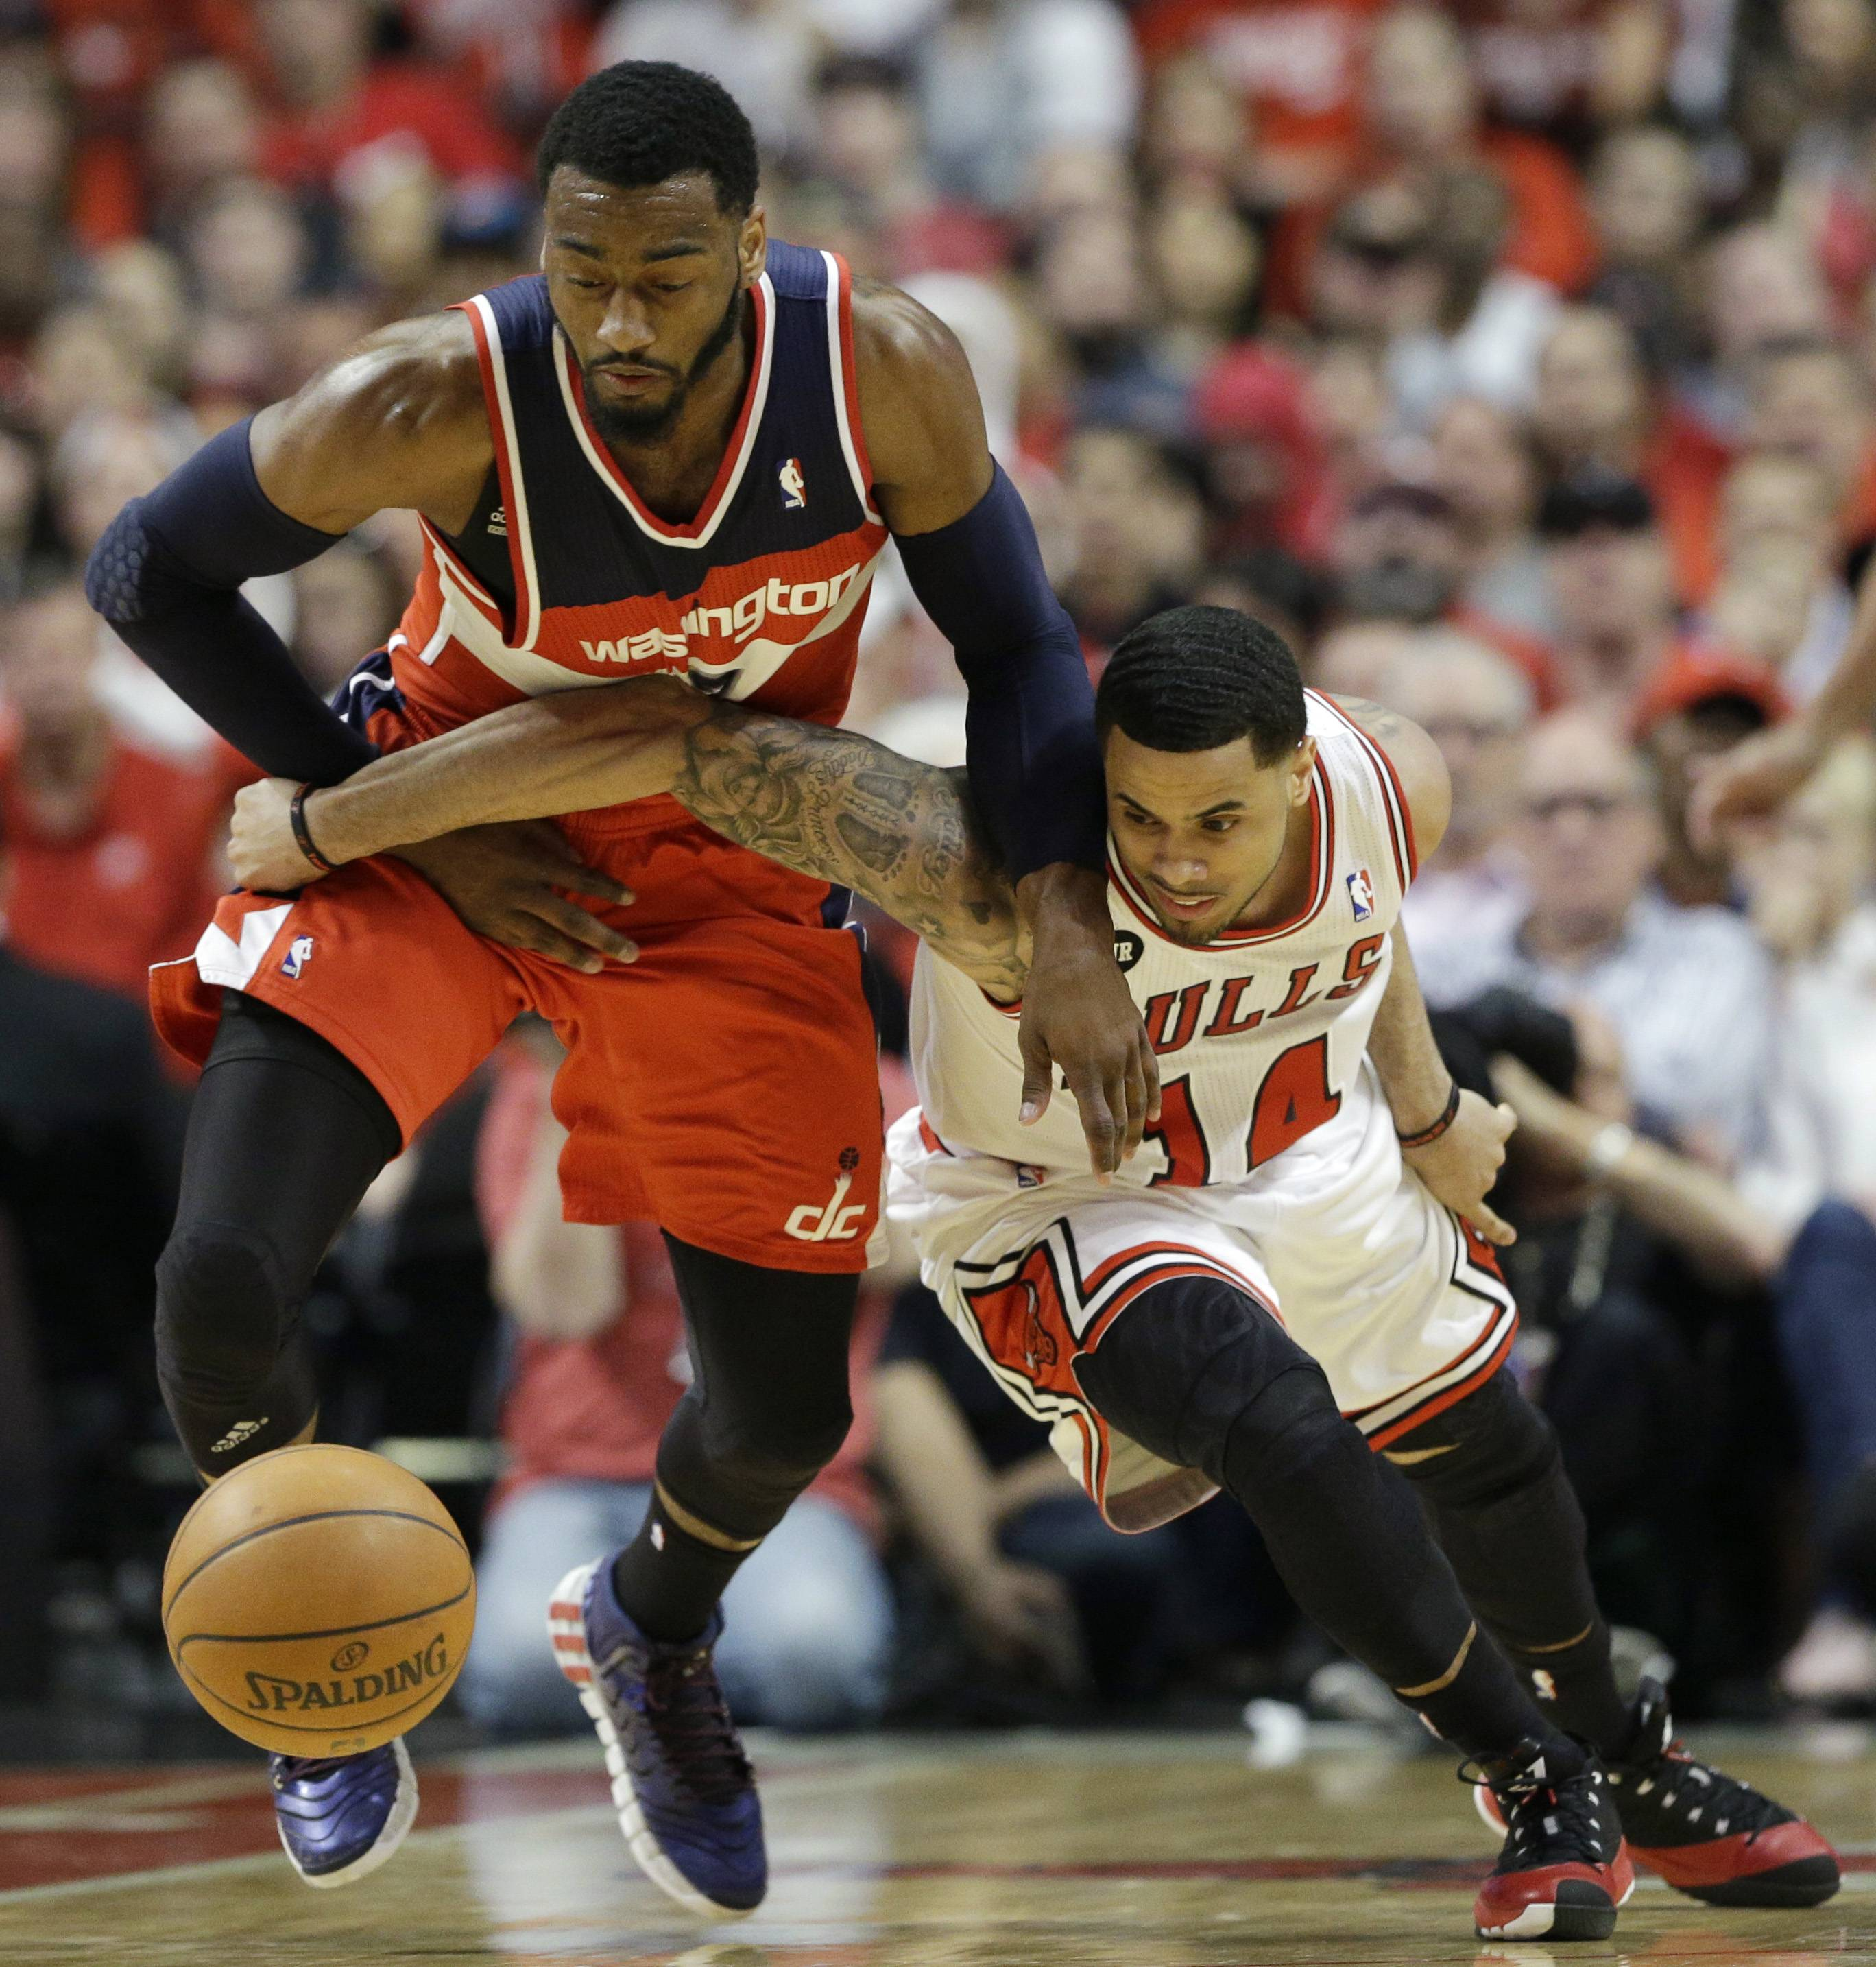 Washington Wizards guard John Wall, left, steals the ball from Chicago Bulls guard D.J. Augustin during the first half in Game 1 of an opening-round NBA basketball playoff series in Chicago, Sunday, April 20, 2014.